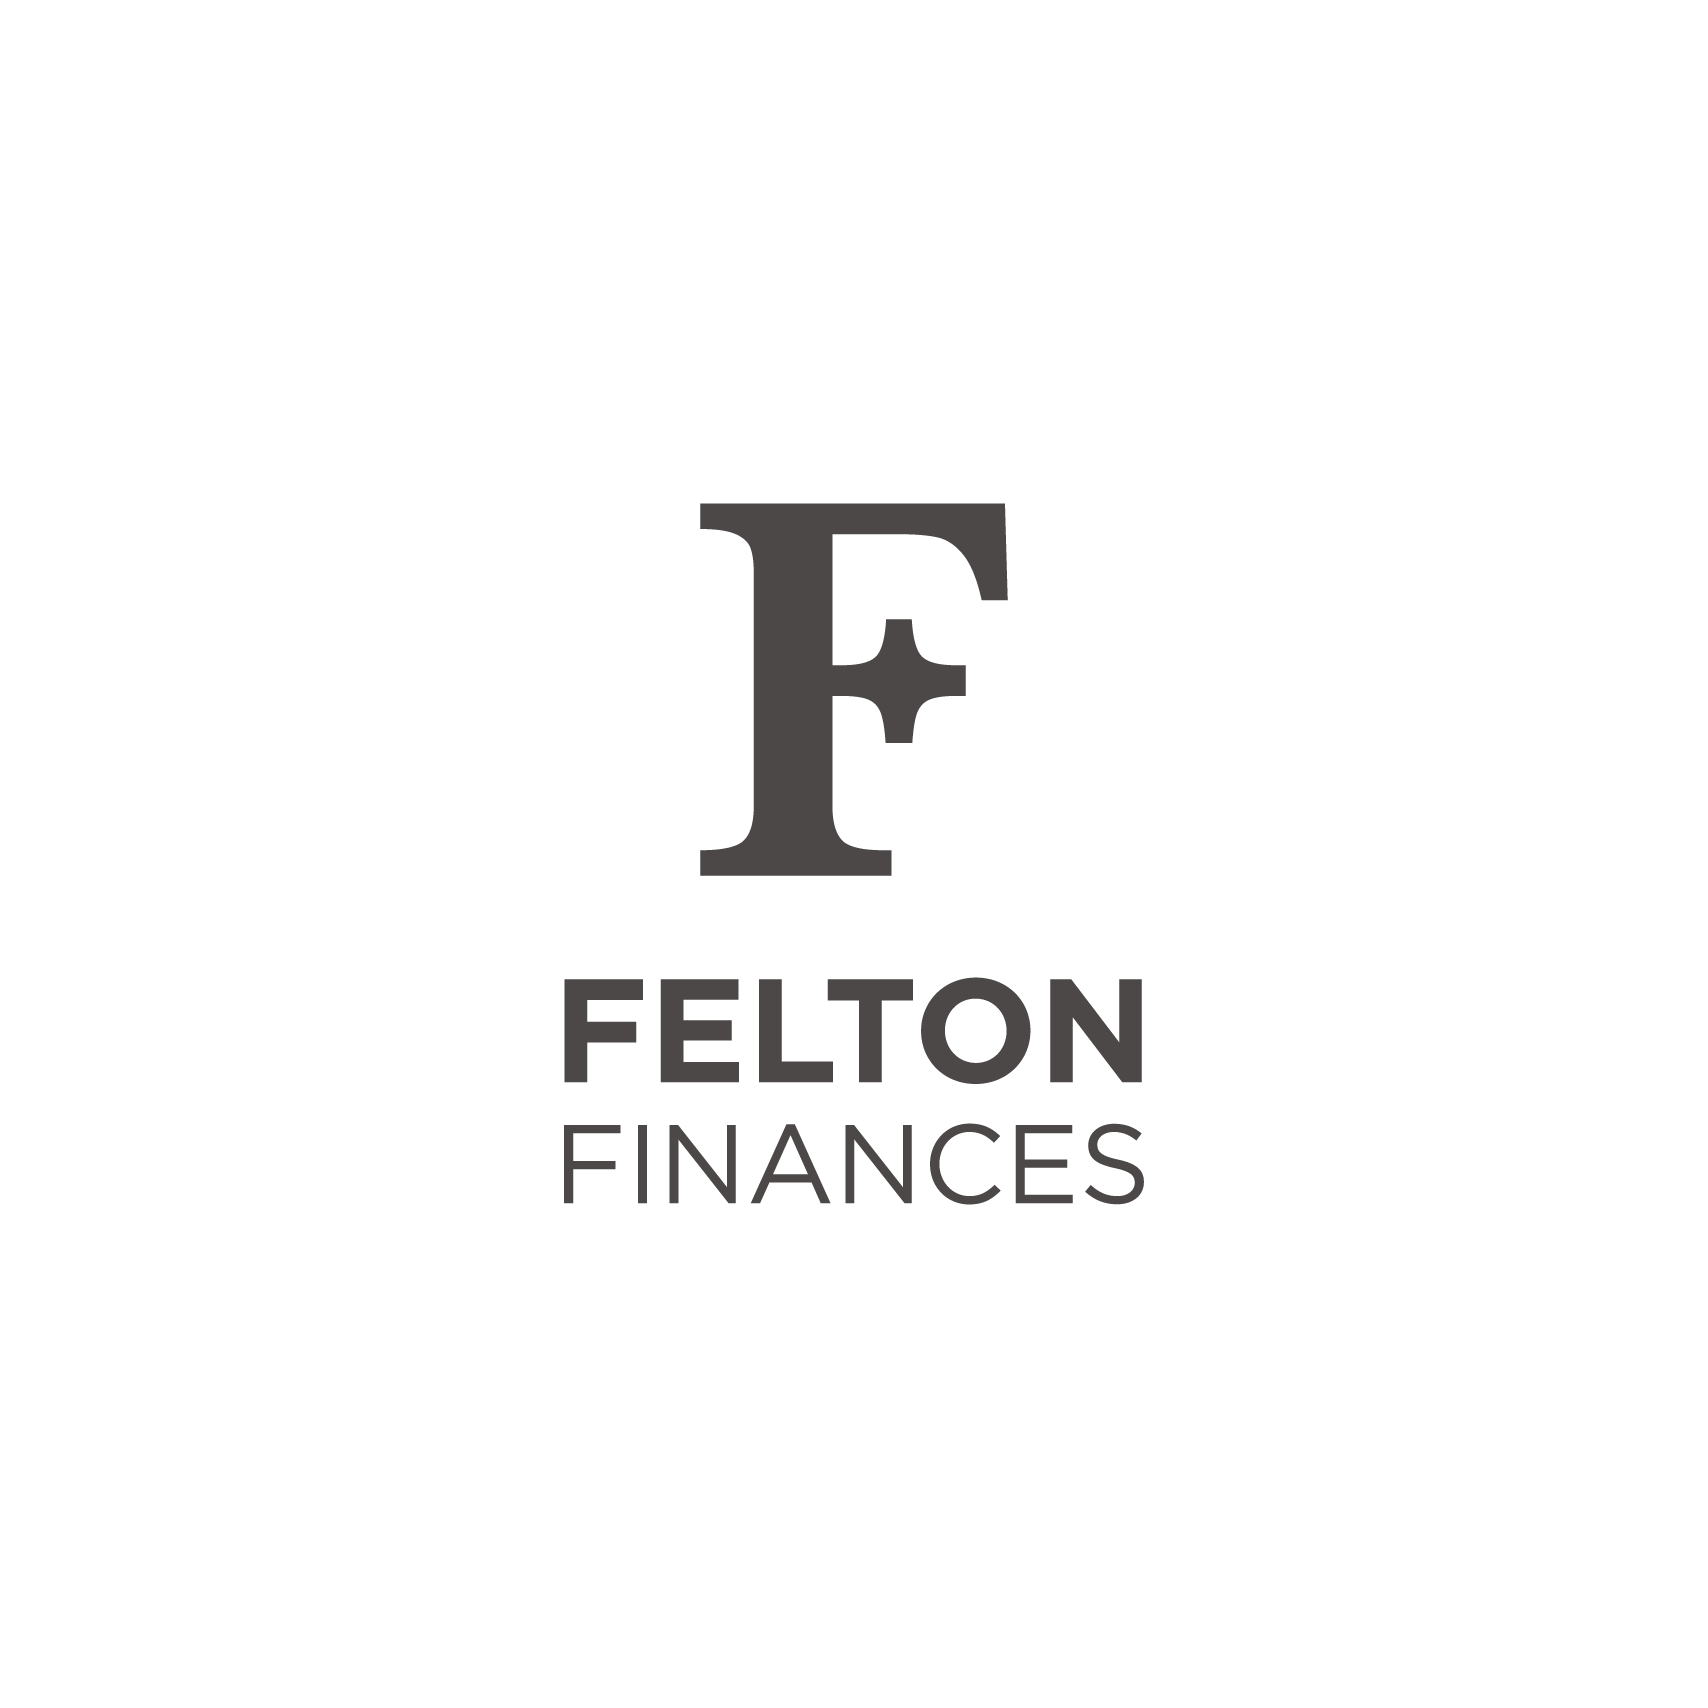 MlleRouge_logos_FeltonFinances